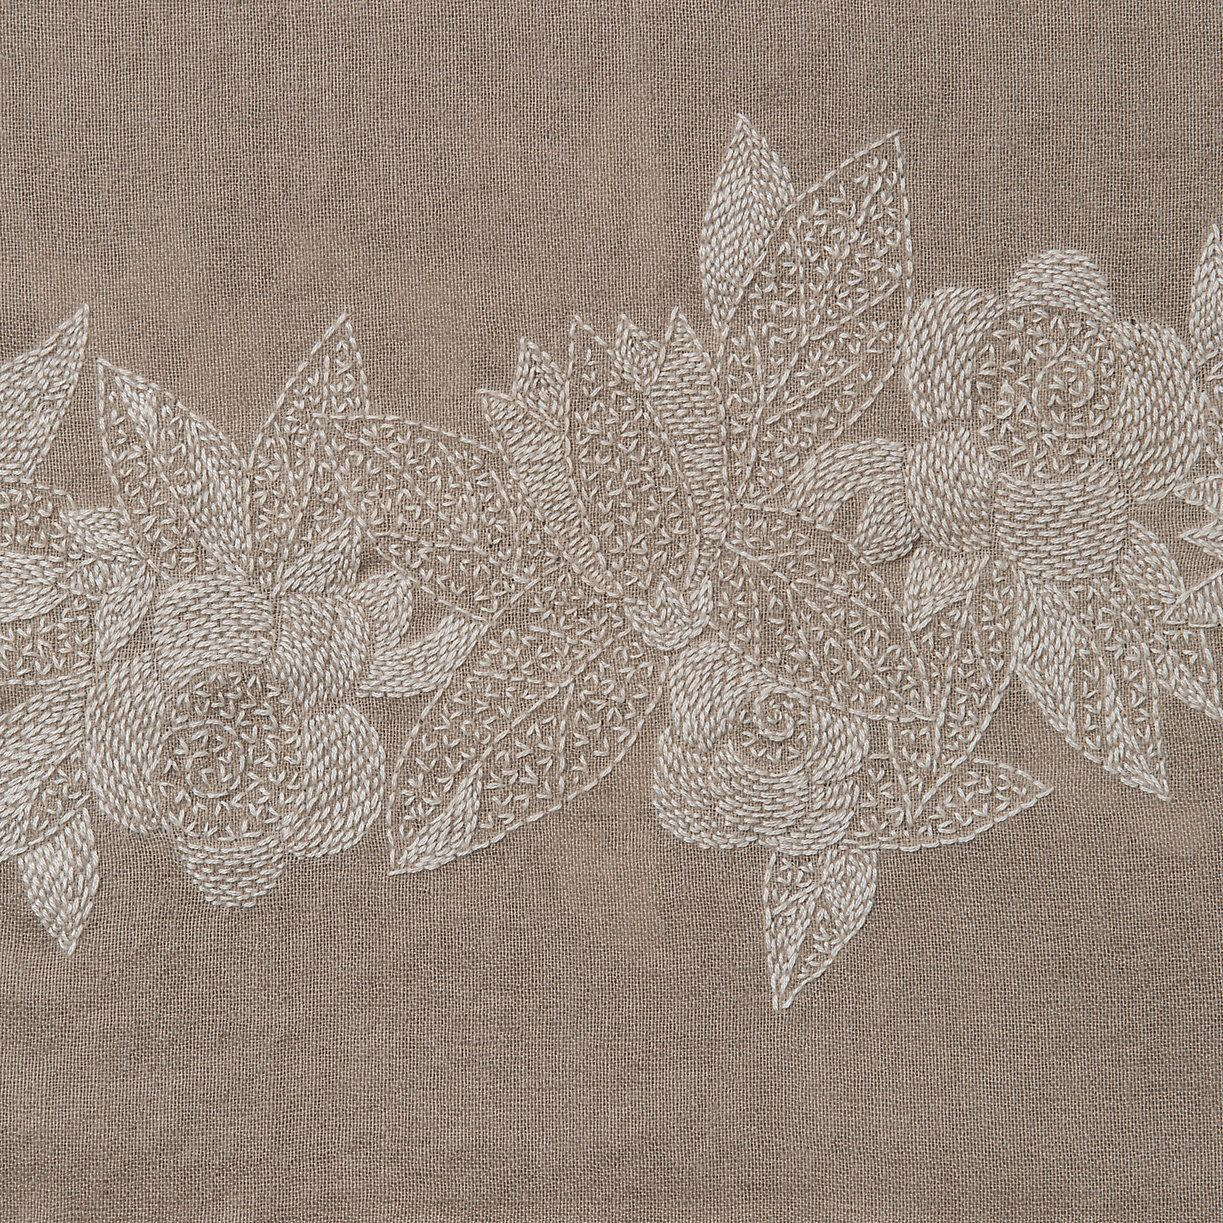 hand stitched embroidery on hand spun cashmere